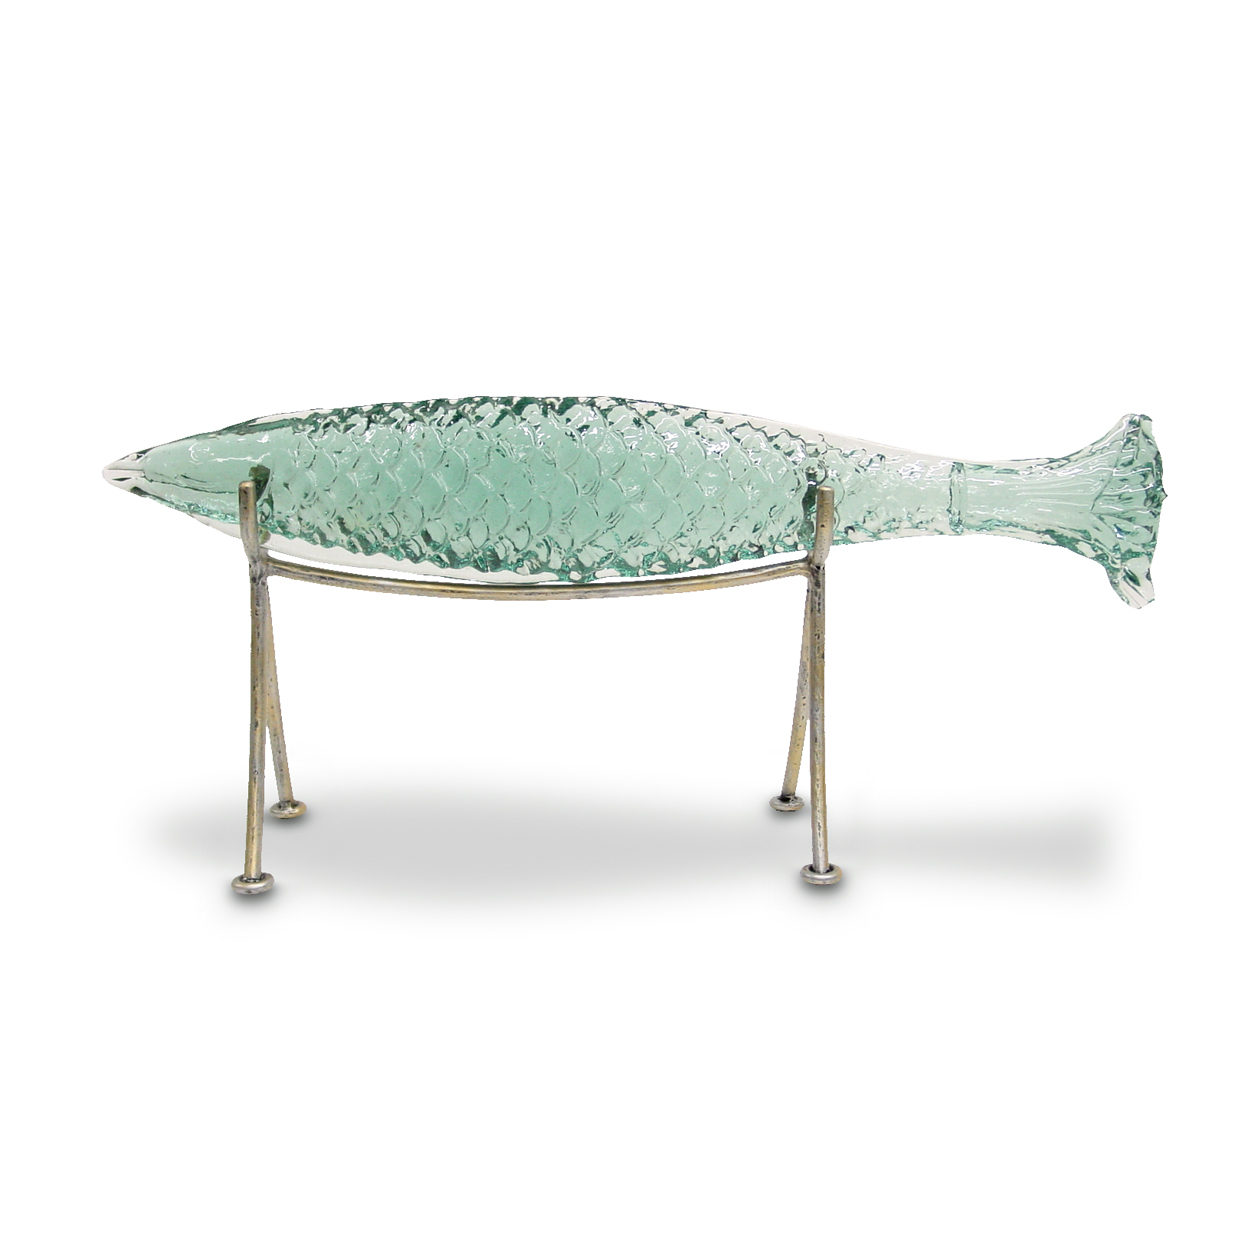 Glass Fish on stands-$170.00 to $220.00